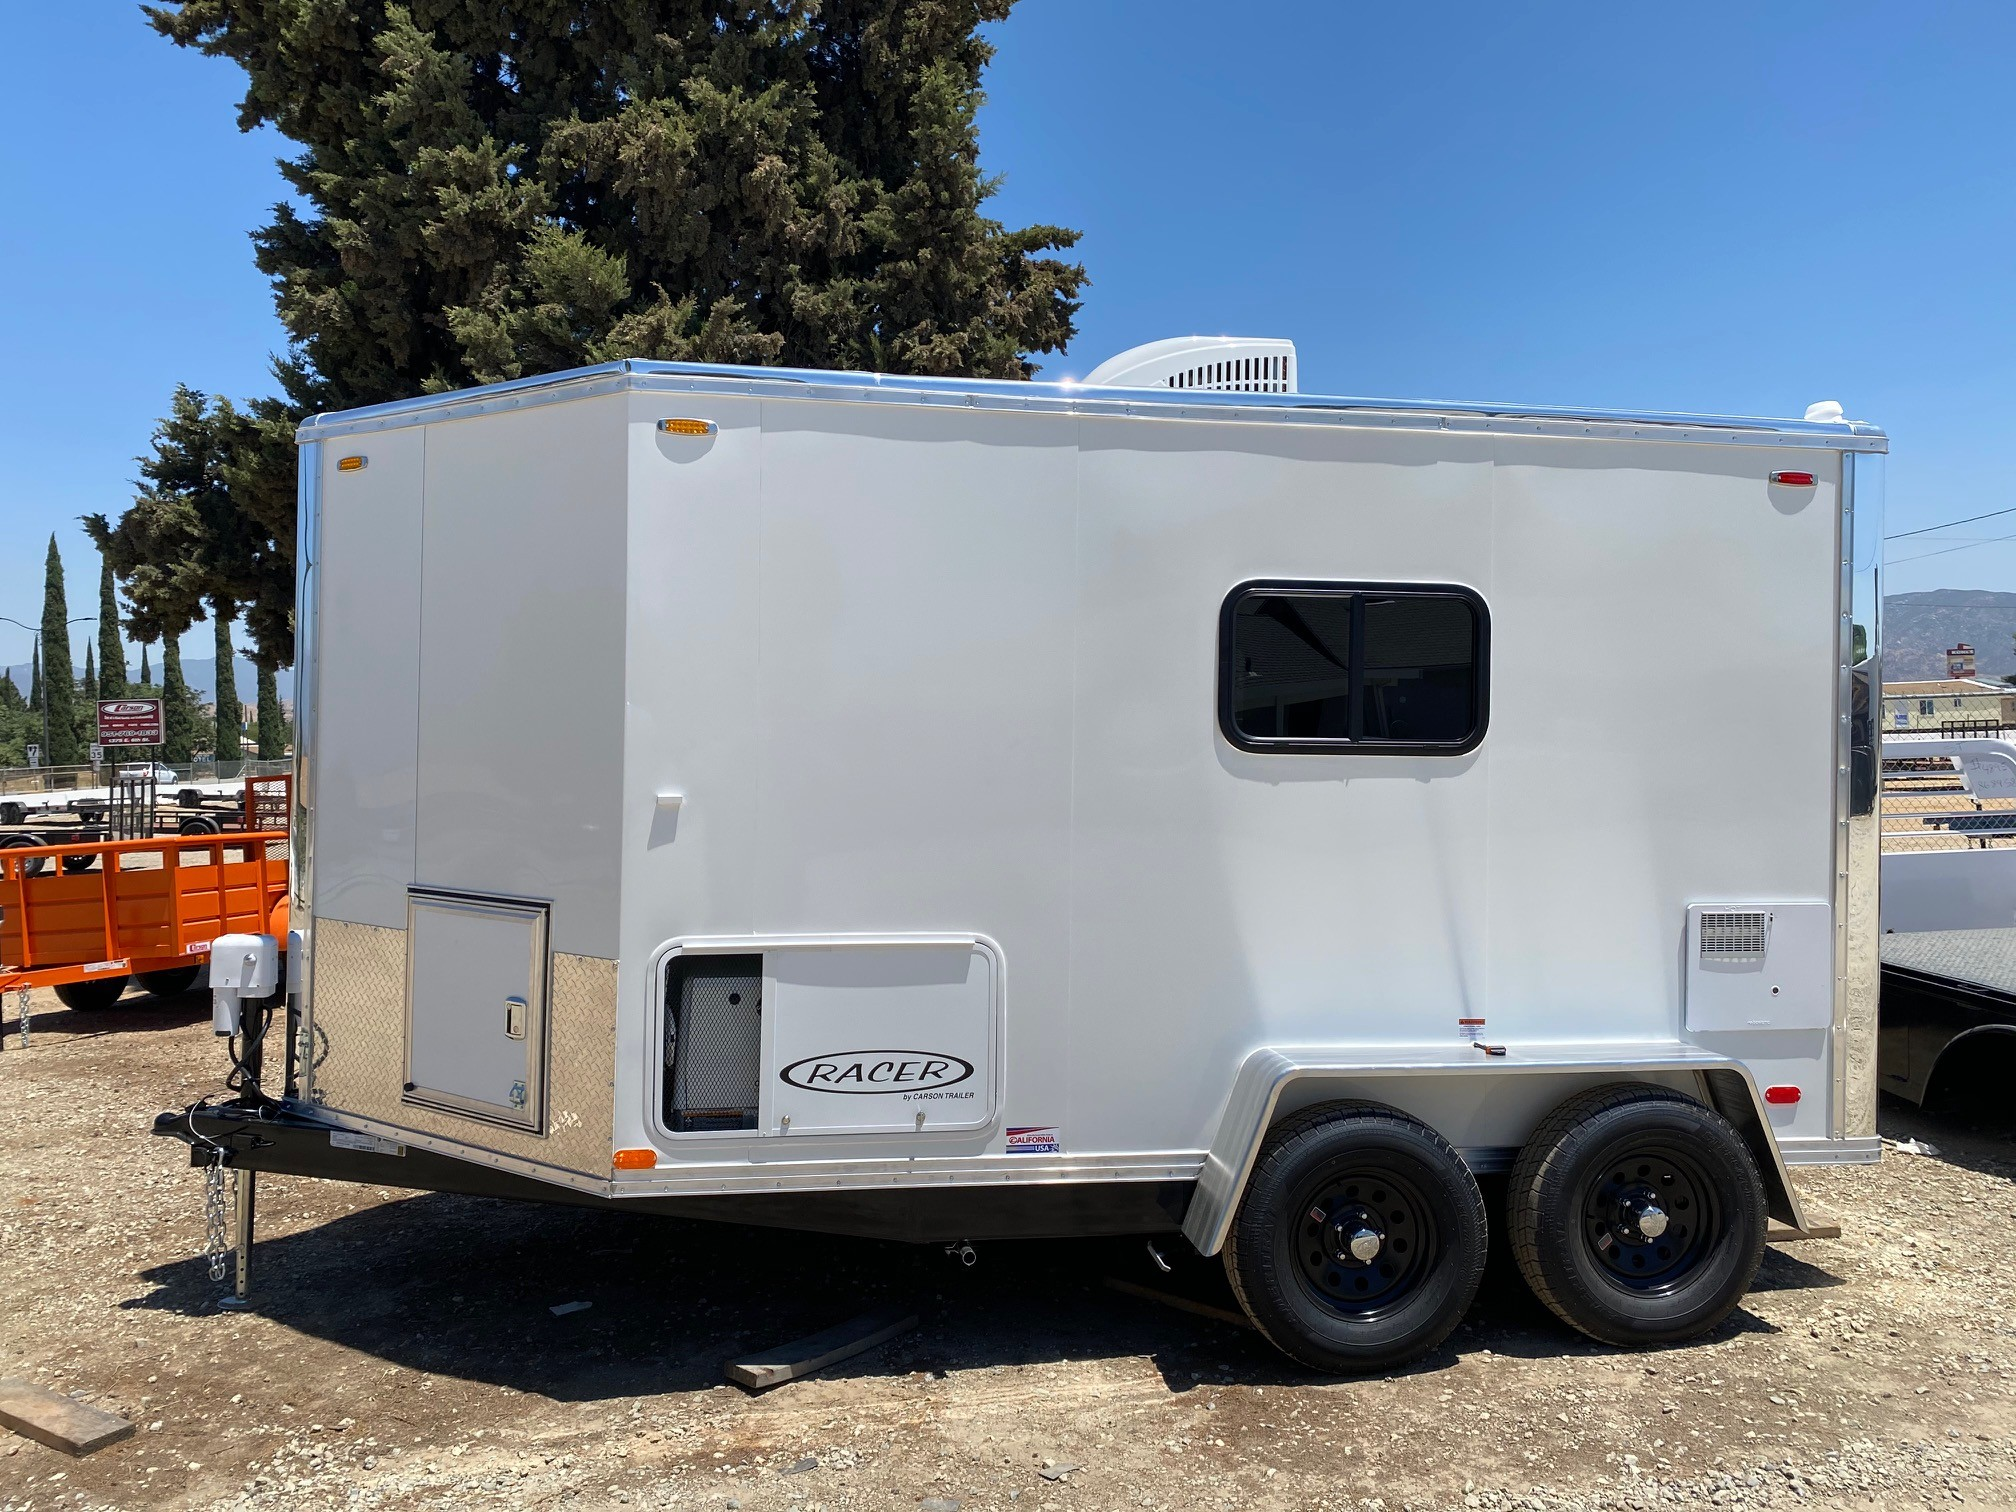 New, 2021, Carson Trailer, 2021 Carson Racer Mobile Dog Grooming Trailer in Beaumont, CA, Cargo Trailers